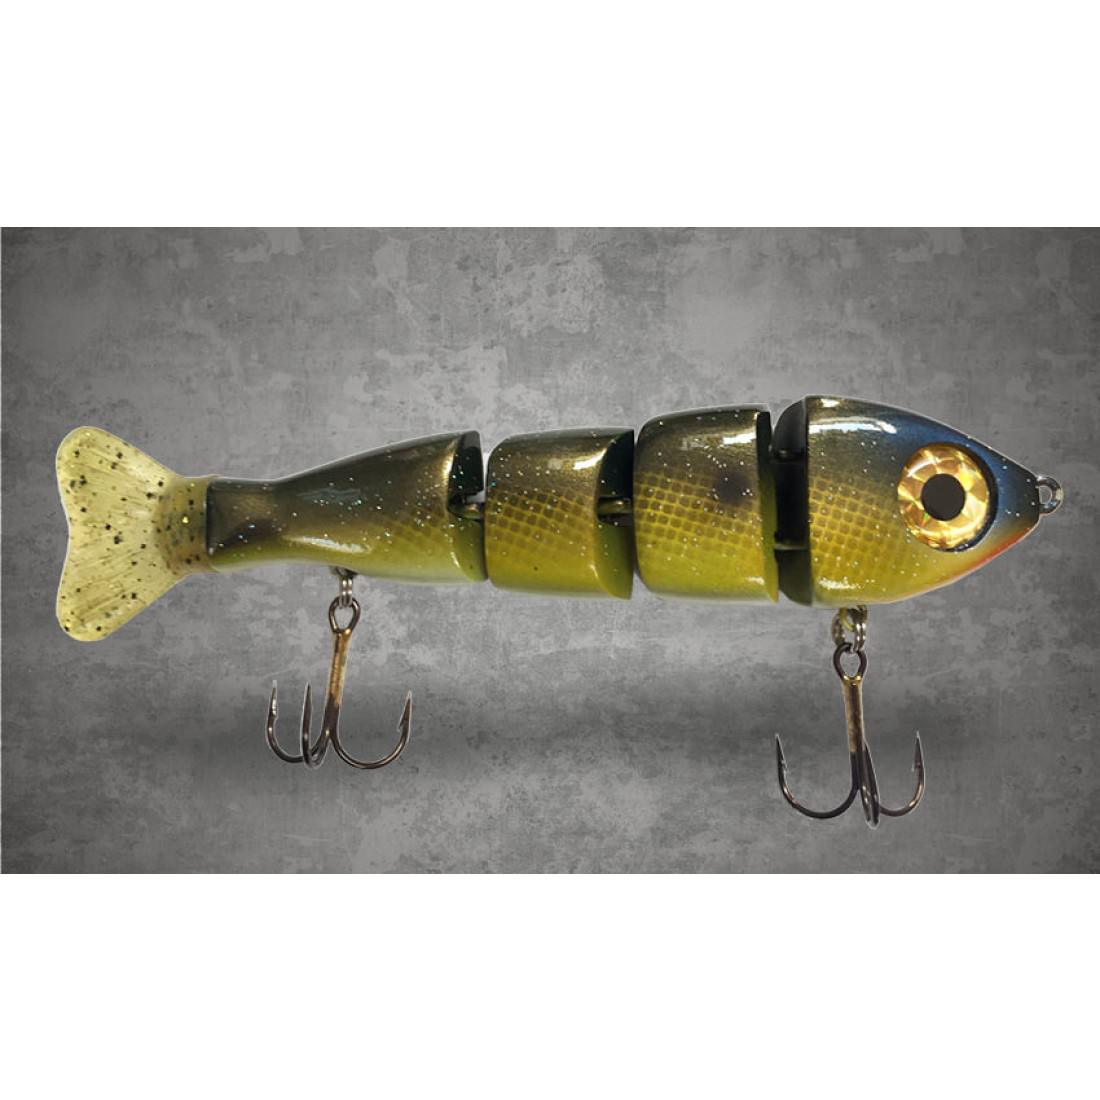 Triple Trout Stubby 4 piece Cali Gill Swimbait 6 inch